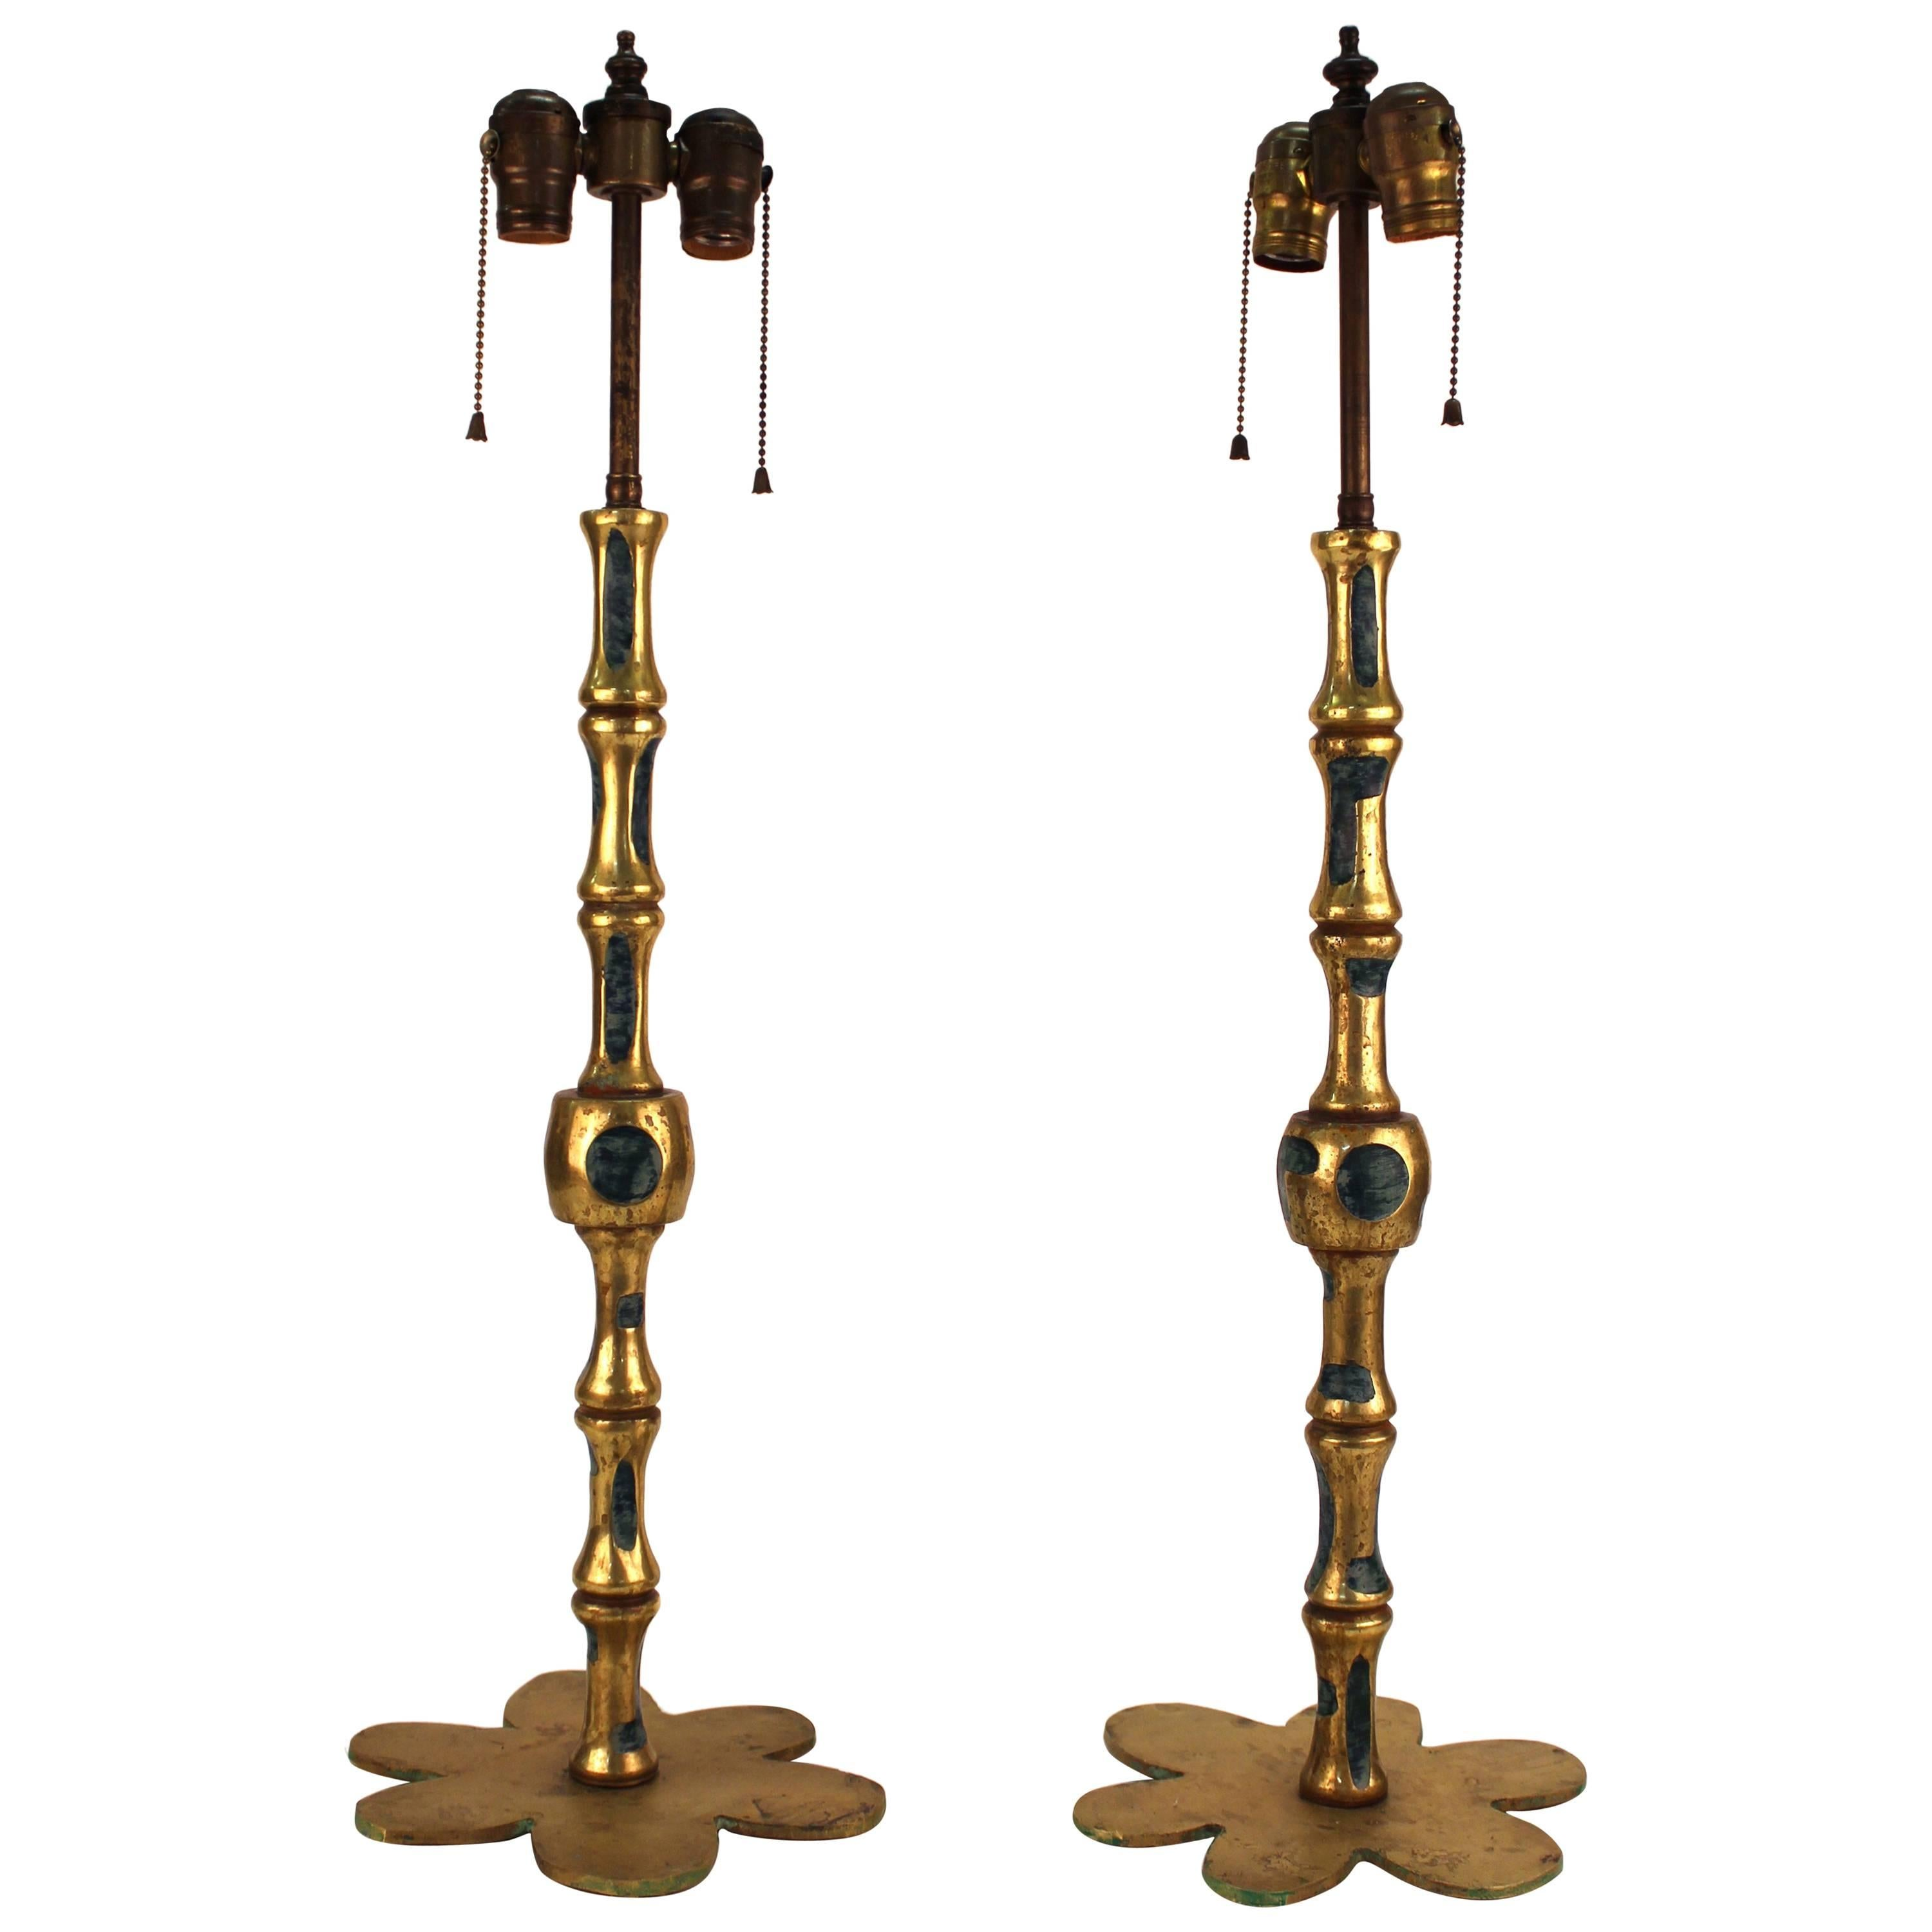 Pepe Mendoza Style Midcentury Bronze and Turquoise Ceramic Candlestick Lamps